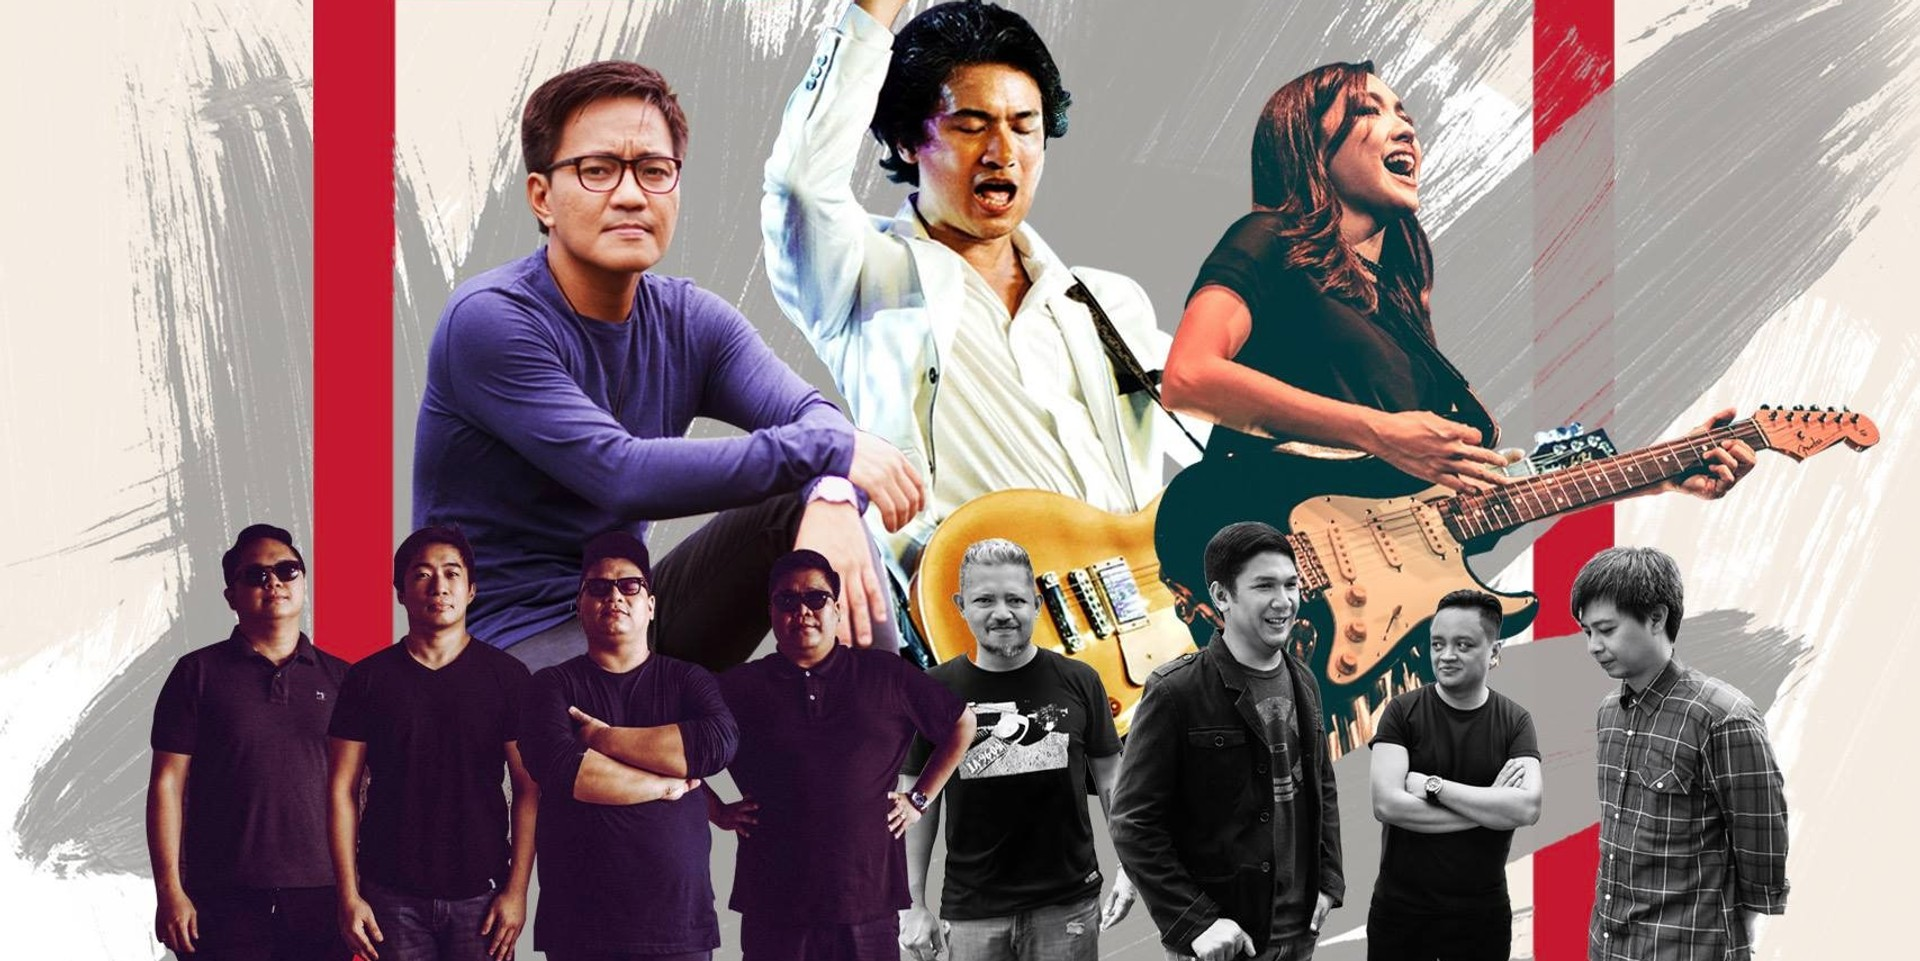 MCA Music and Smart Music Live team up to bring back the NURock Years